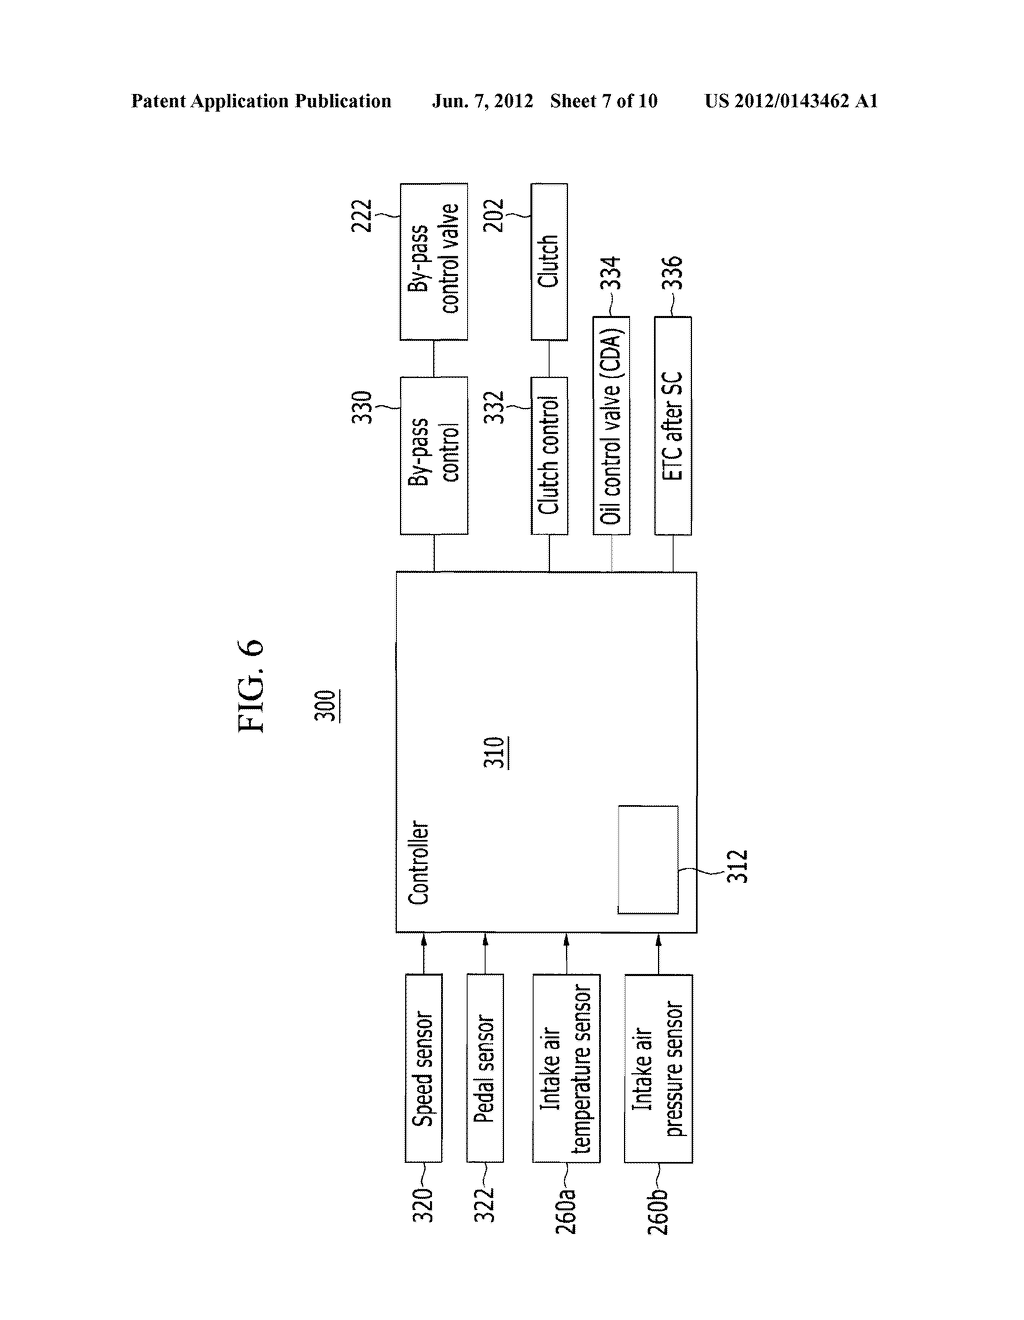 Engine Having Supercharged Intake System With Cda Valve Supercharger Diagram Arrangement And Methods Related Thereto Schematic Image 08